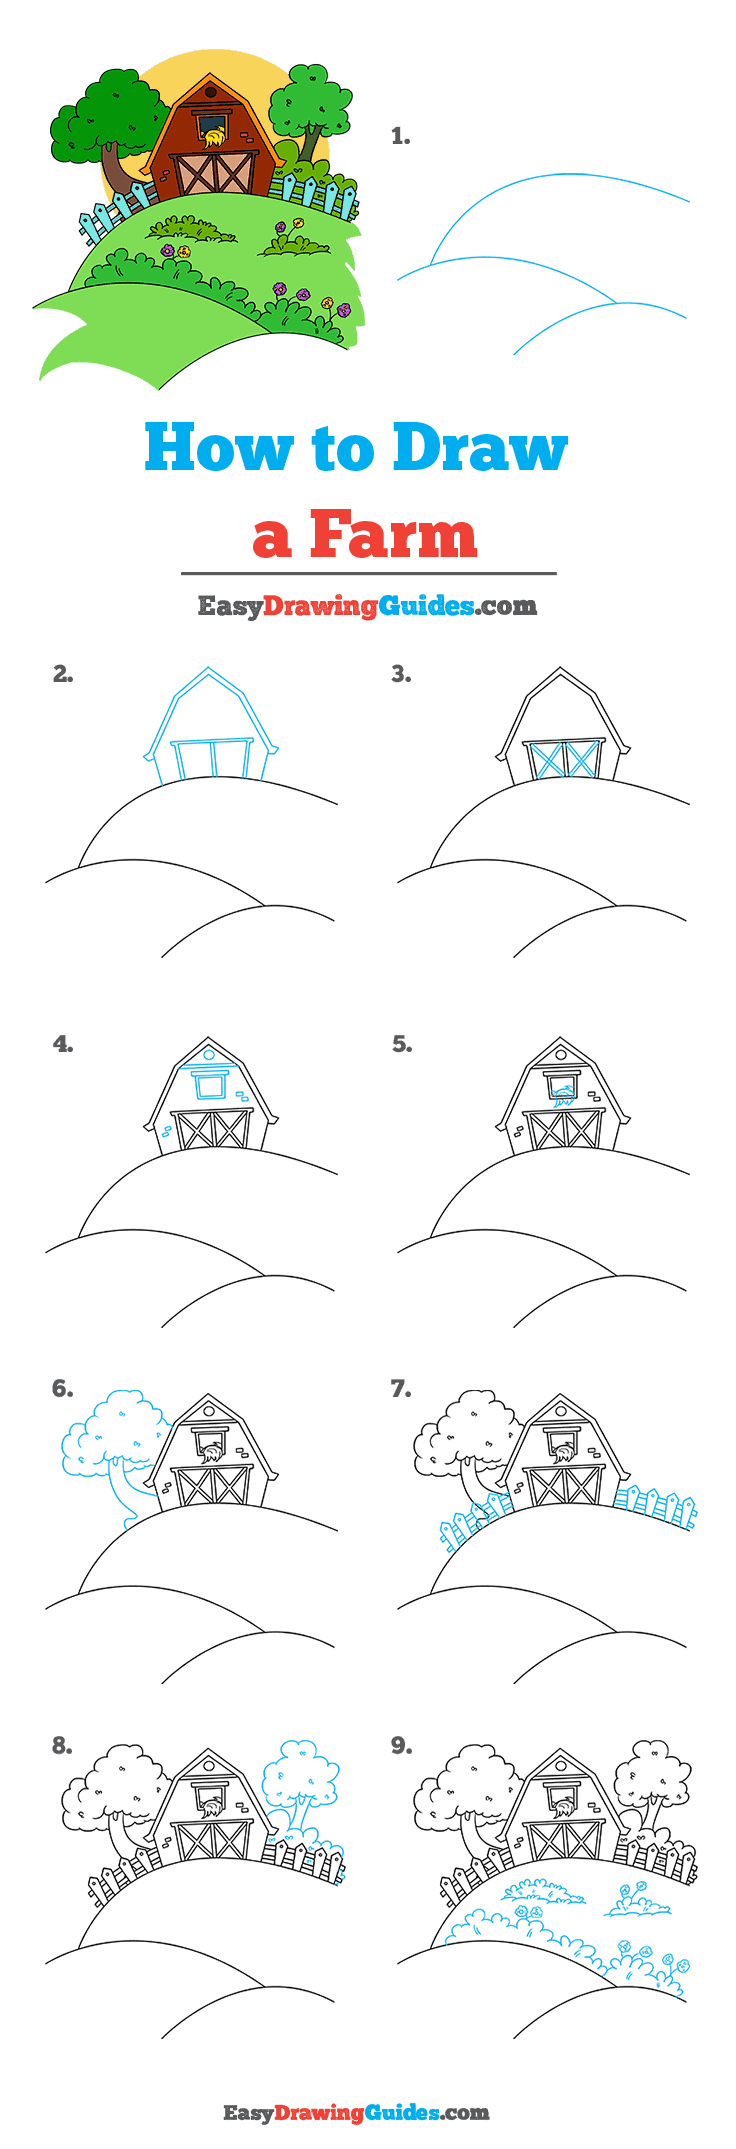 How to Draw a Farm Step by Step Tutorial Image